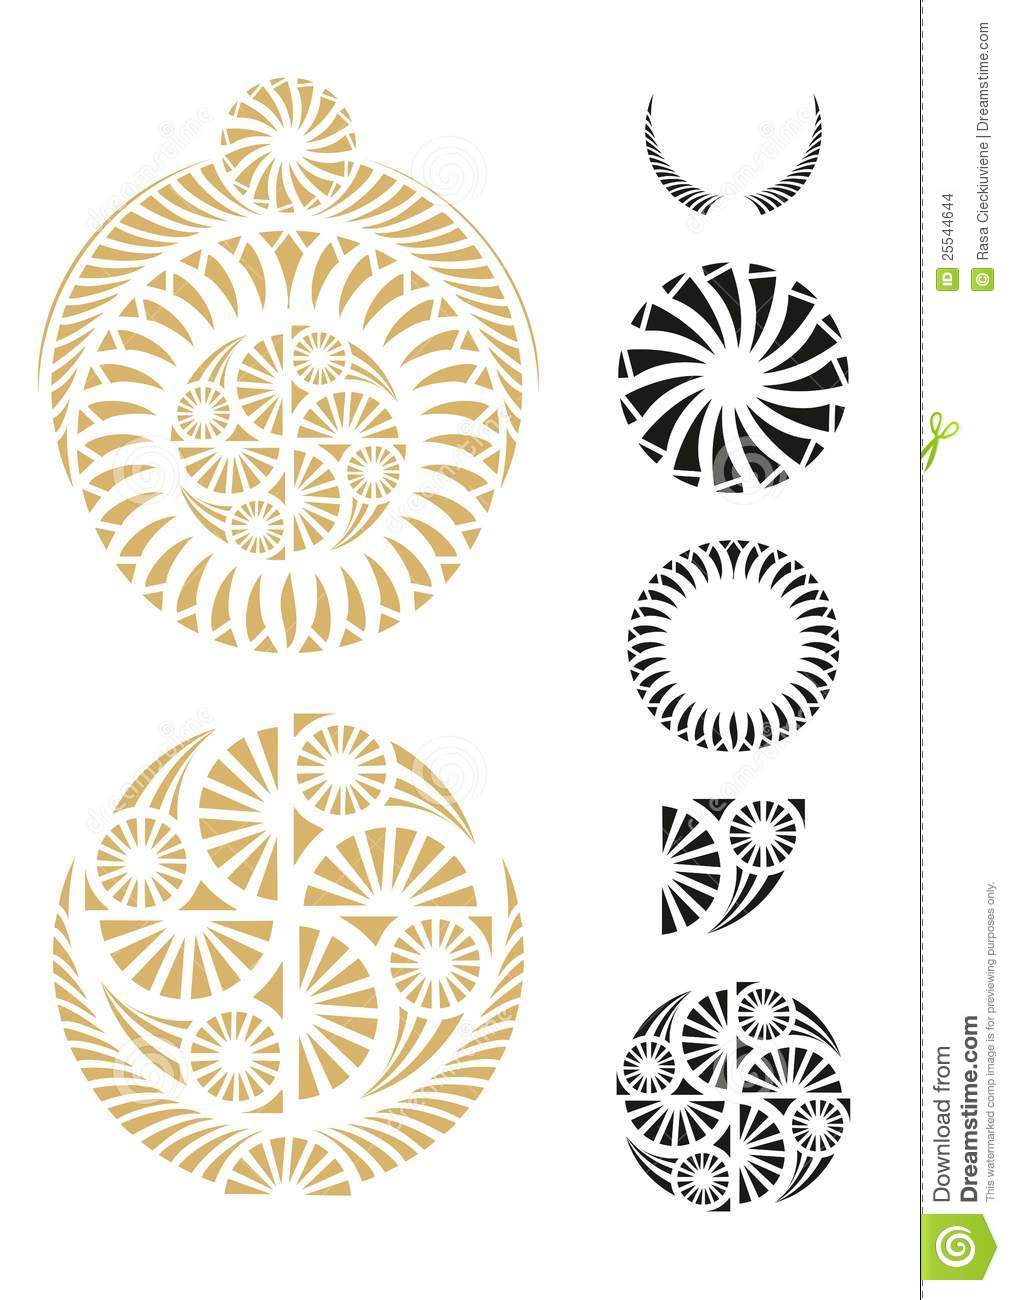 Visual Design Elements : Graphic design elements stock vector image of floral